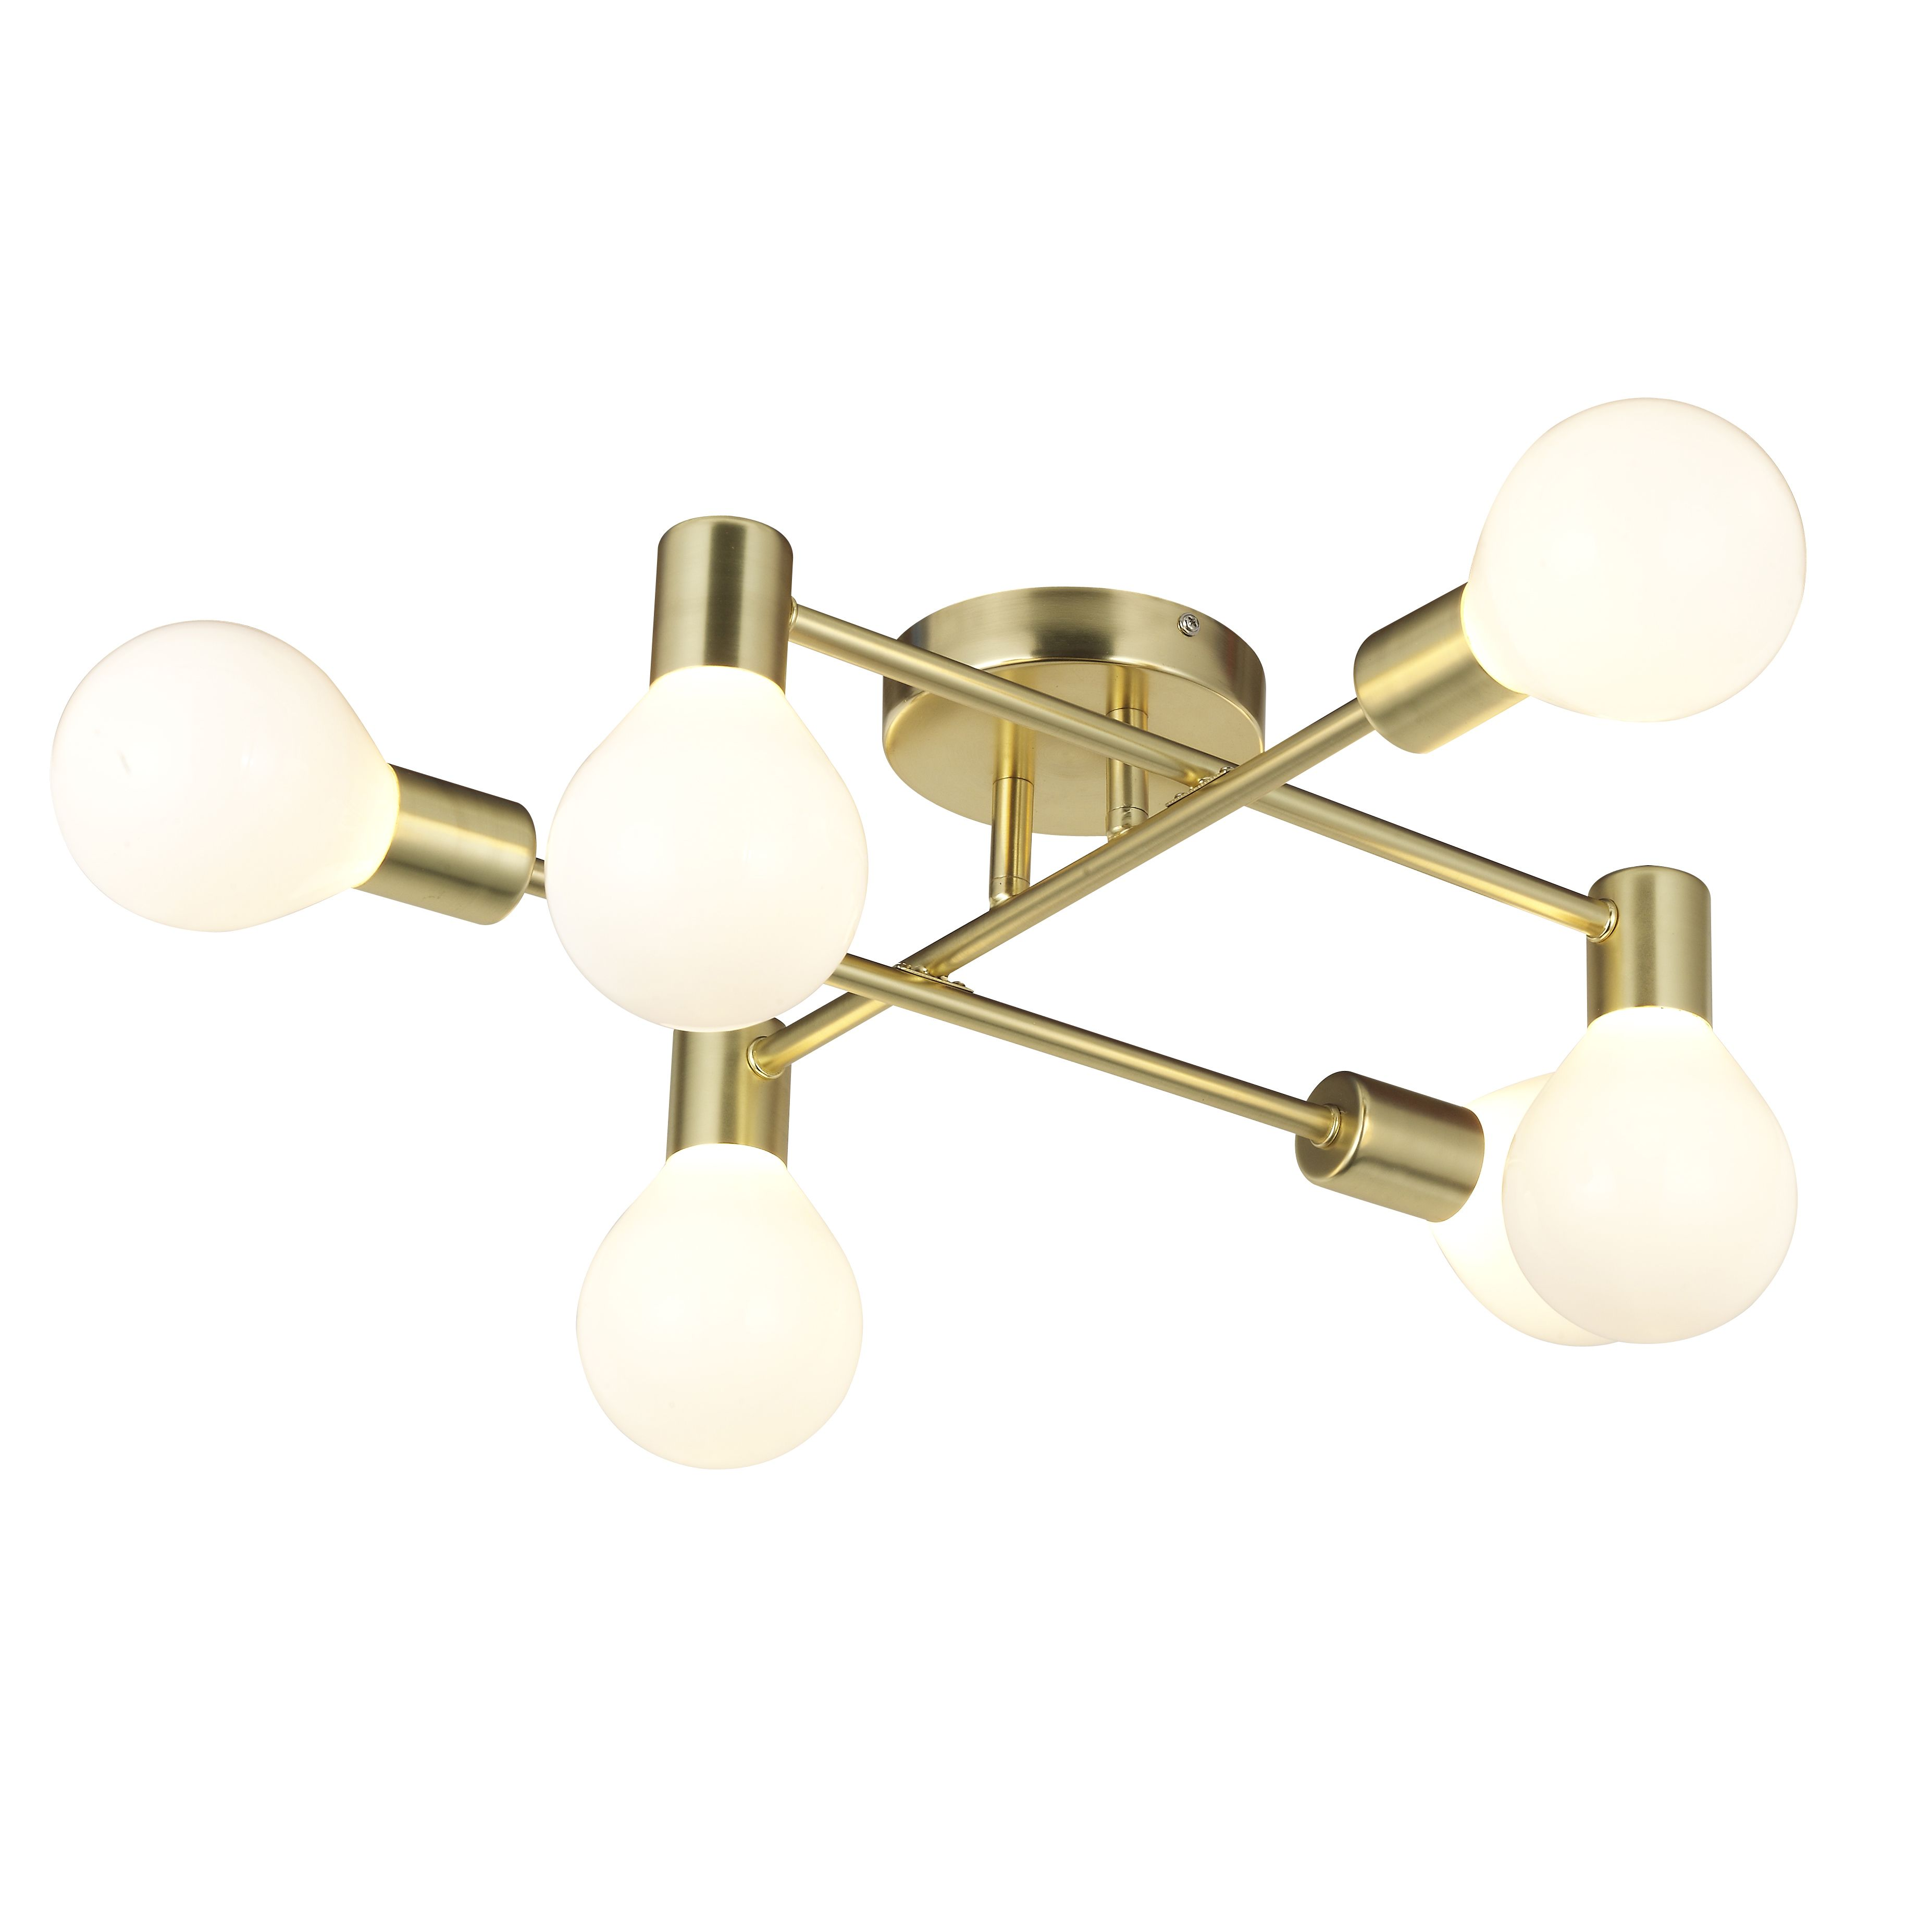 new style 9e3f0 23e47 Channing Modern Gold Satin Brushed 6 Lamp Ceiling Light